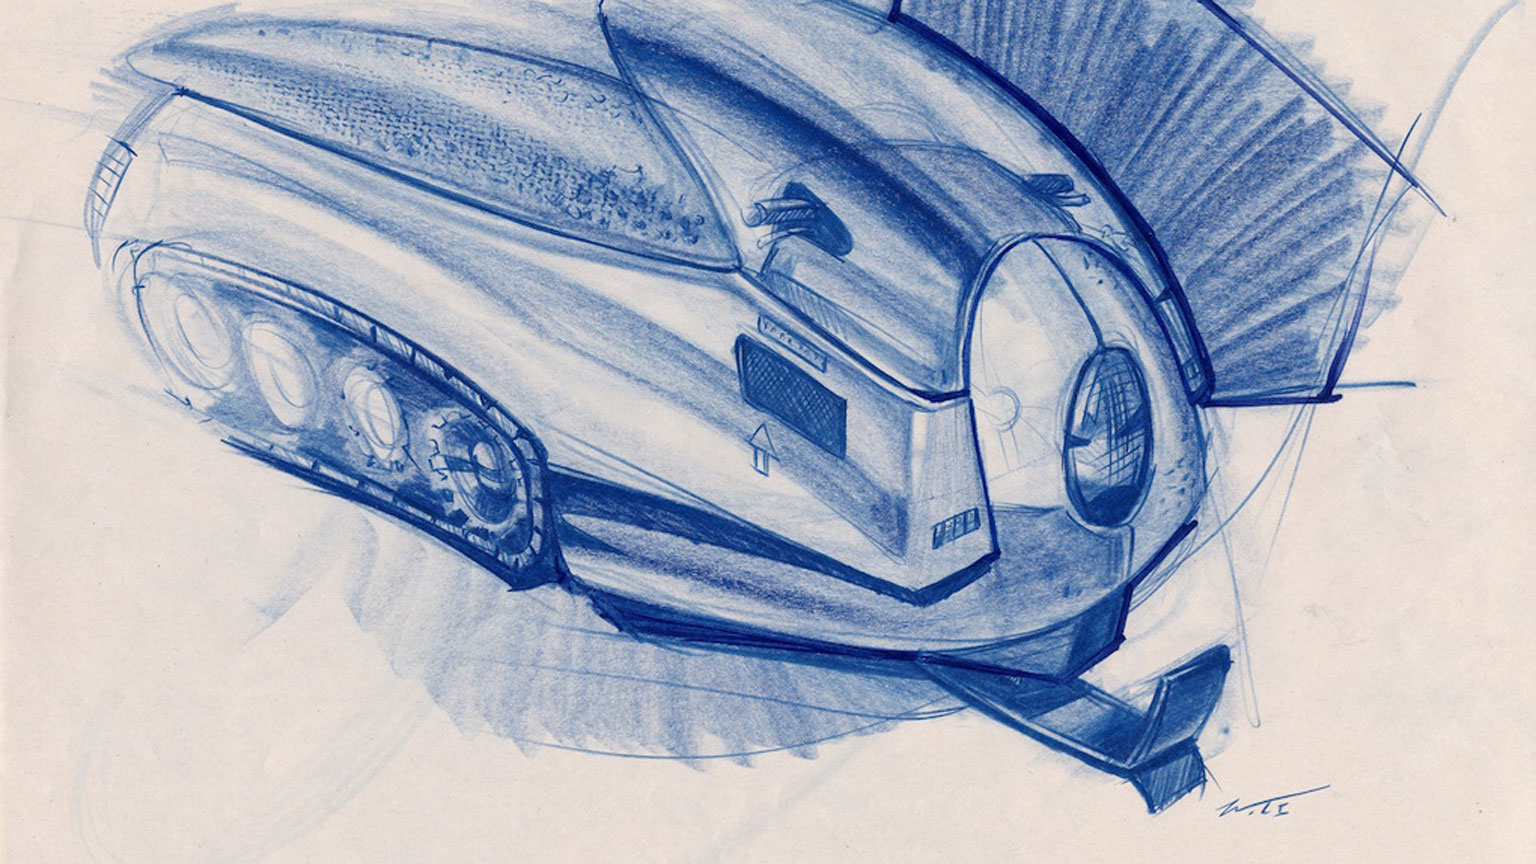 Hand-rendering of a concept vehicle, drawn for Design Bloc's interdisciplinary capstone design course.